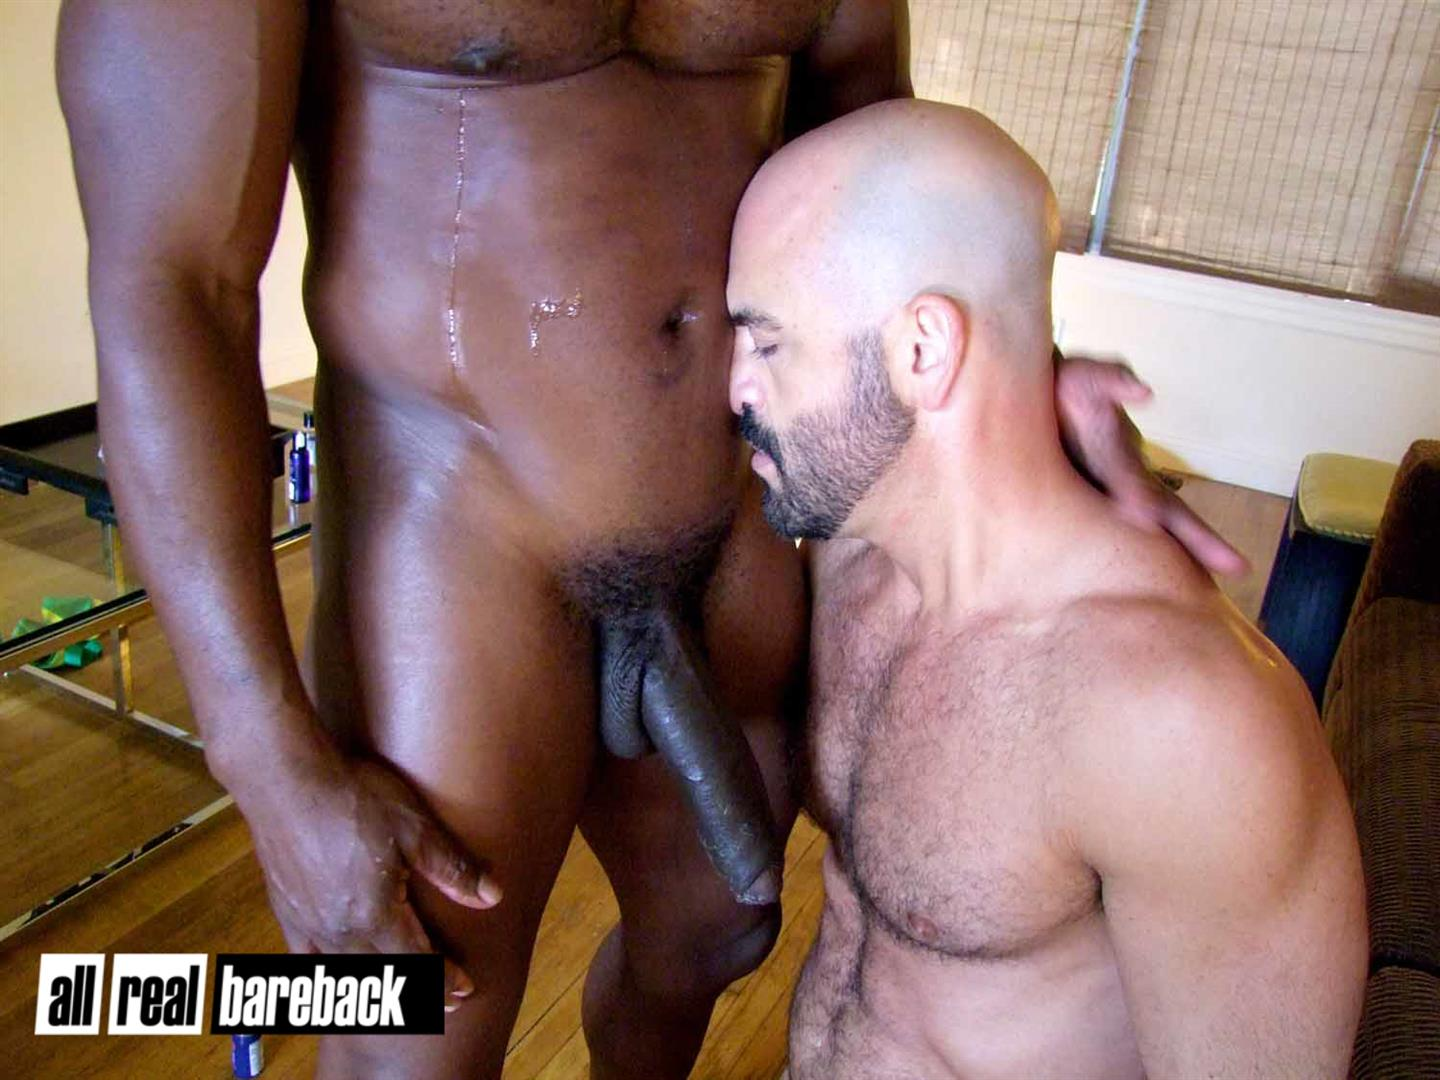 All Real Bareback Cutler X and Adam Russo Real Life Boyfriends Barebacking Amateur Gay Porn 15 Cutler X Films His First Ever Bareback Video With Real Life BF Adam Russo